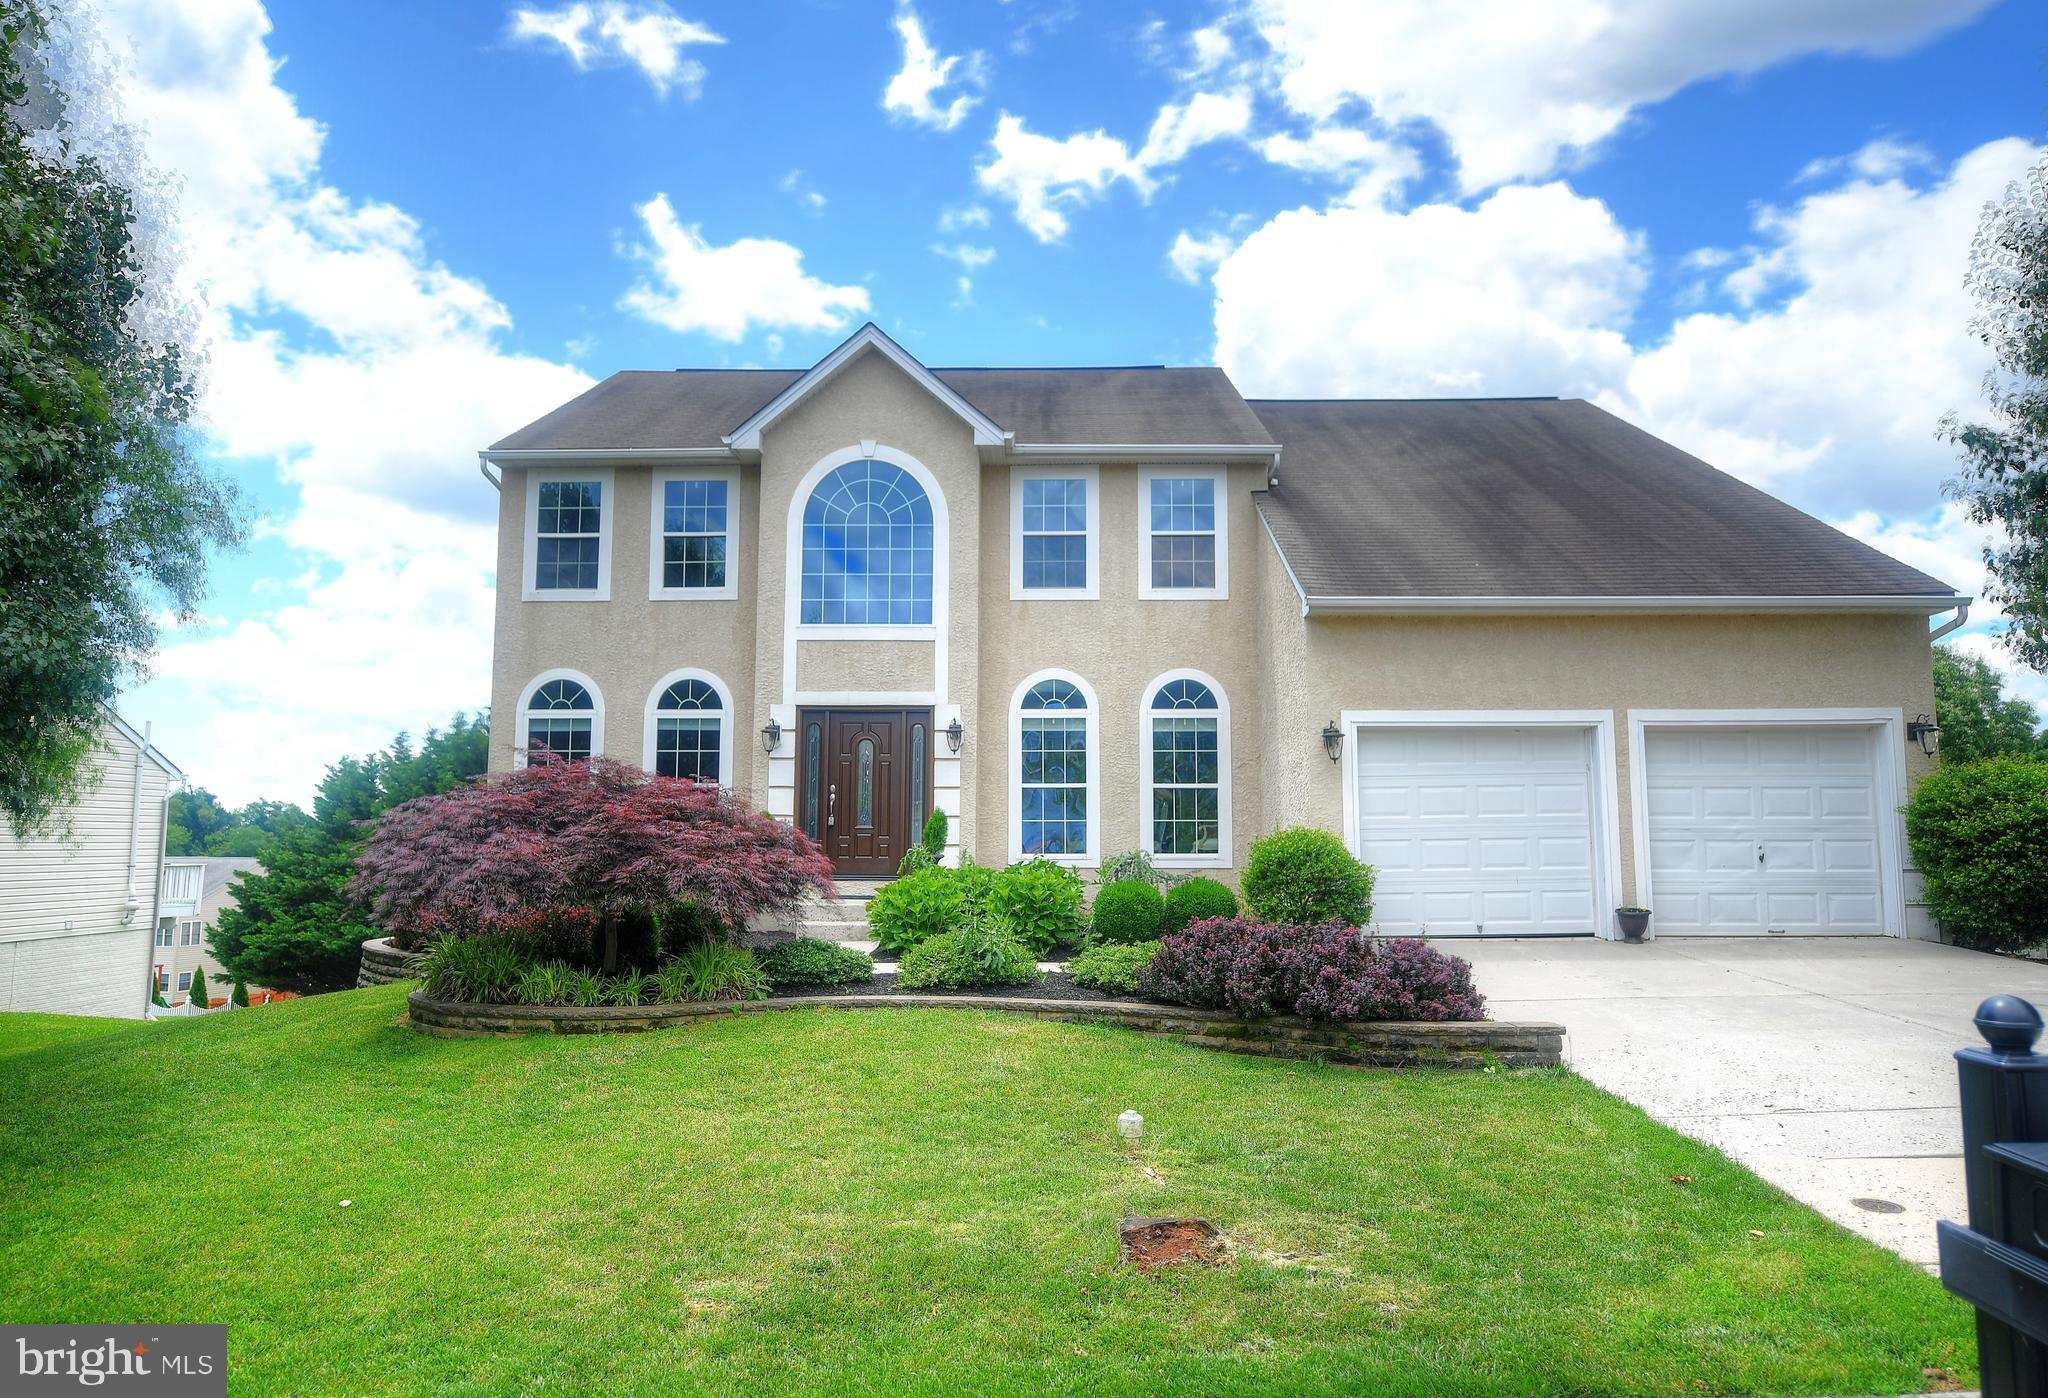 501 LIGHTHOUSE DRIVE, PERRYVILLE, MD 21903